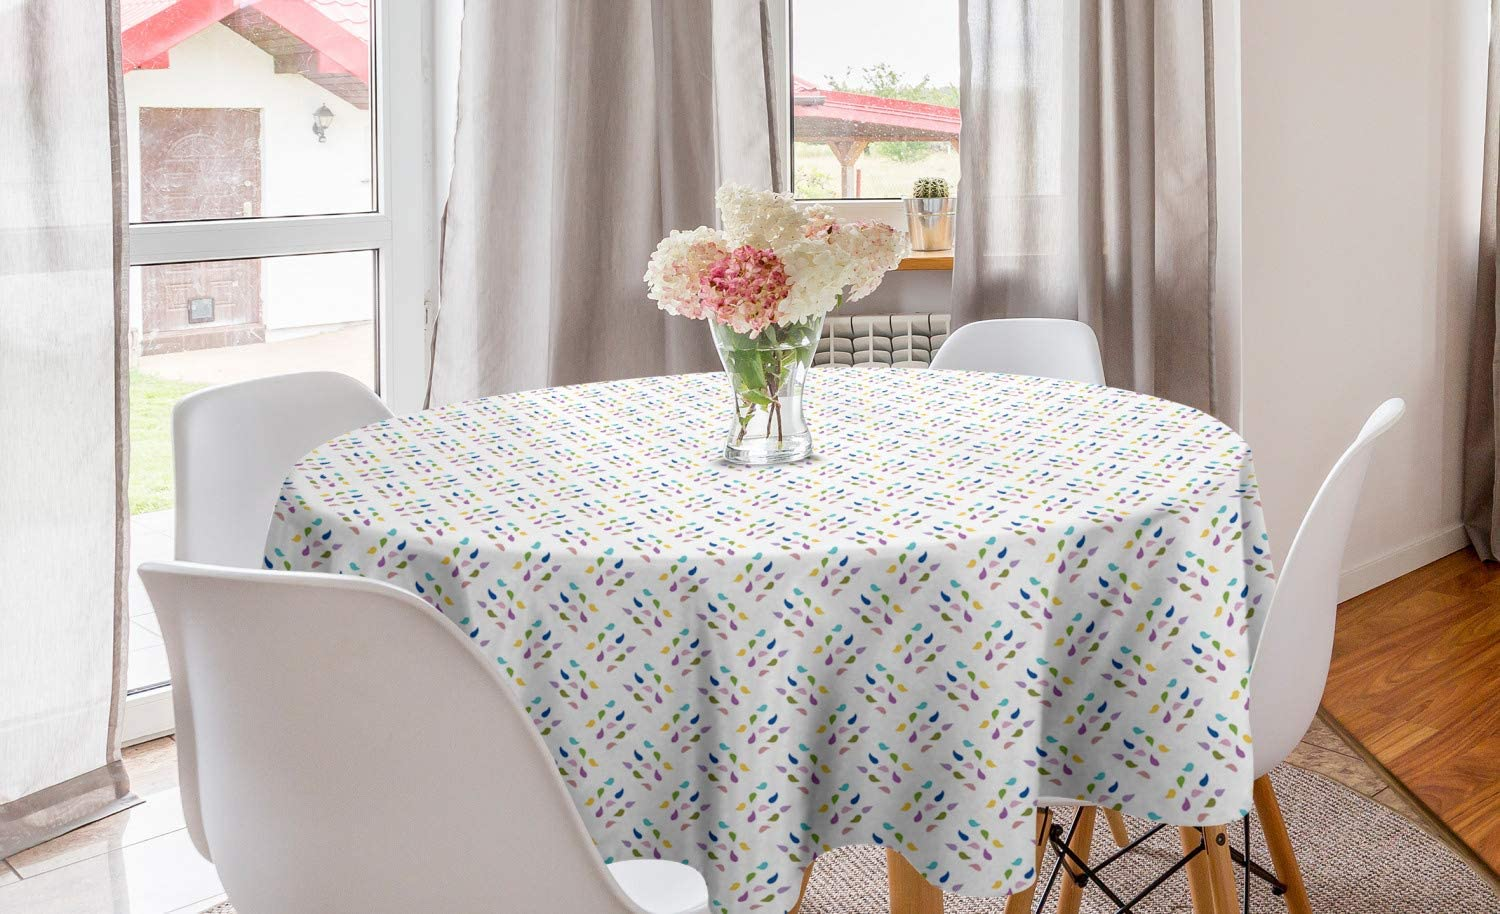 Lunarable Abstract Round Tablecloth, Droplets Like Colorful Mini Motifs Arranged Diagonally on a White Background, Circle Table Cloth Cover for Dining Room Kitchen Decoration, 60